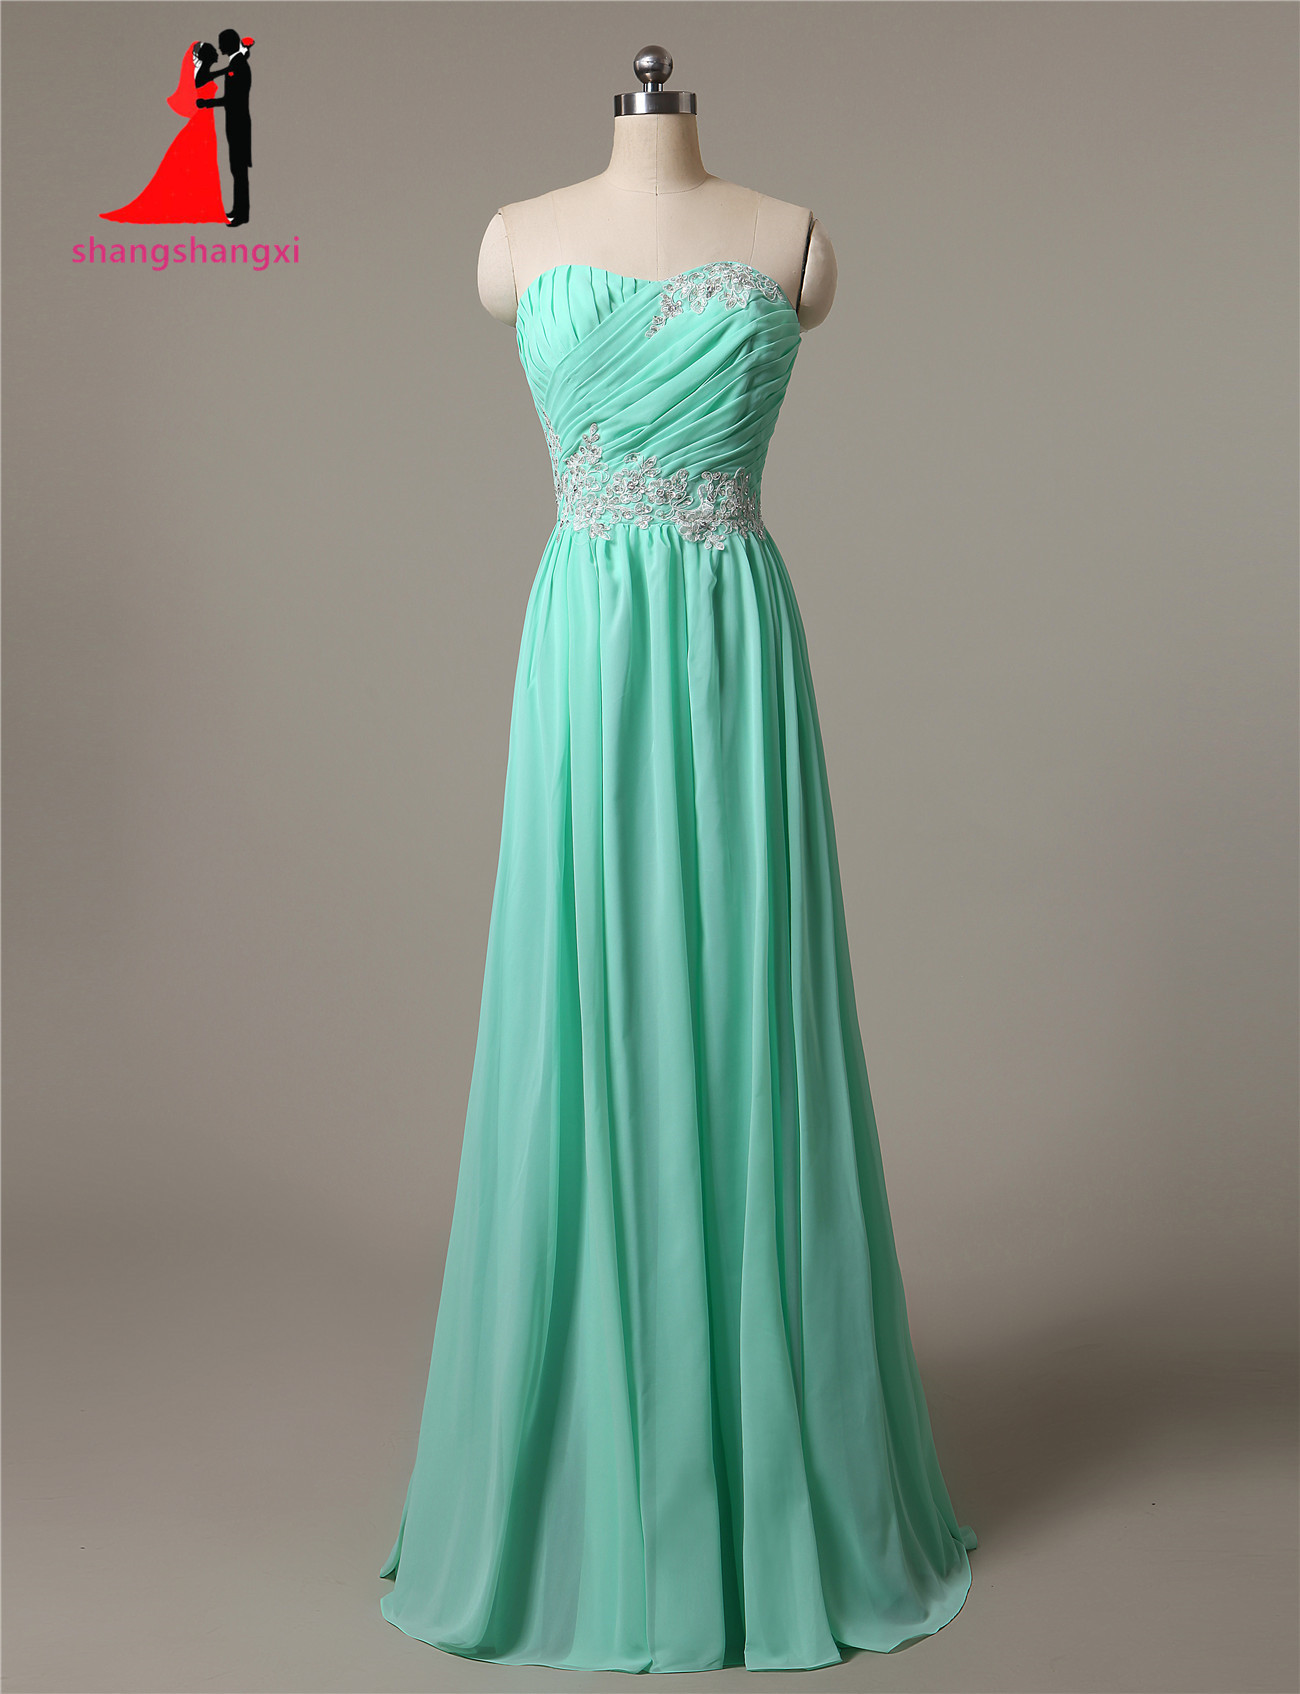 New Strapless Mint Long Chiffon Bridesmaid Dresses 2017 Plus Size ...